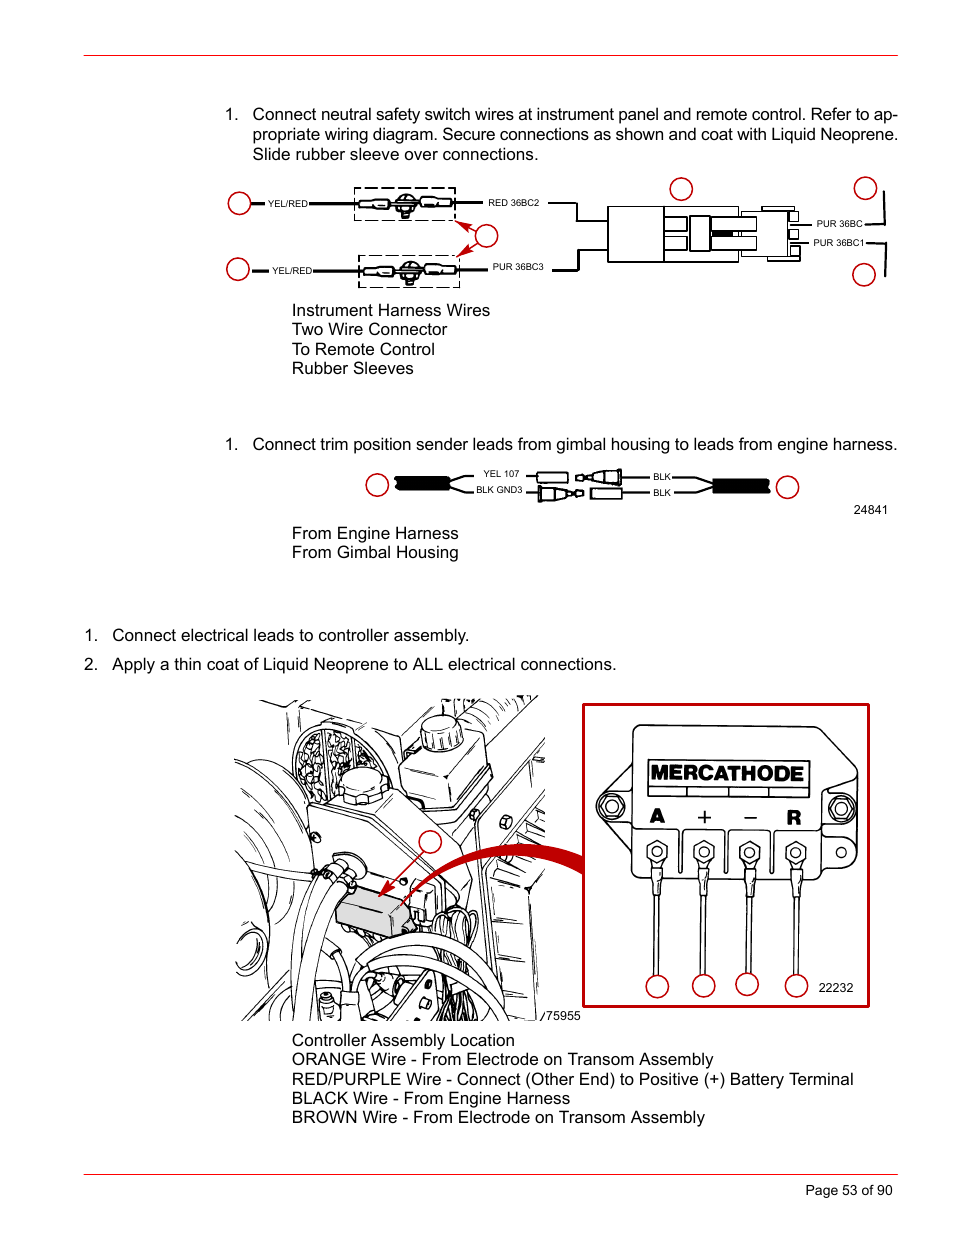 Mercruiser Trim Position Sender Wiring Diagram Electrical Outdrive Pump Diagrams Mercury Installation Manual D7 3l D Tronic User Page 53 90 Parts